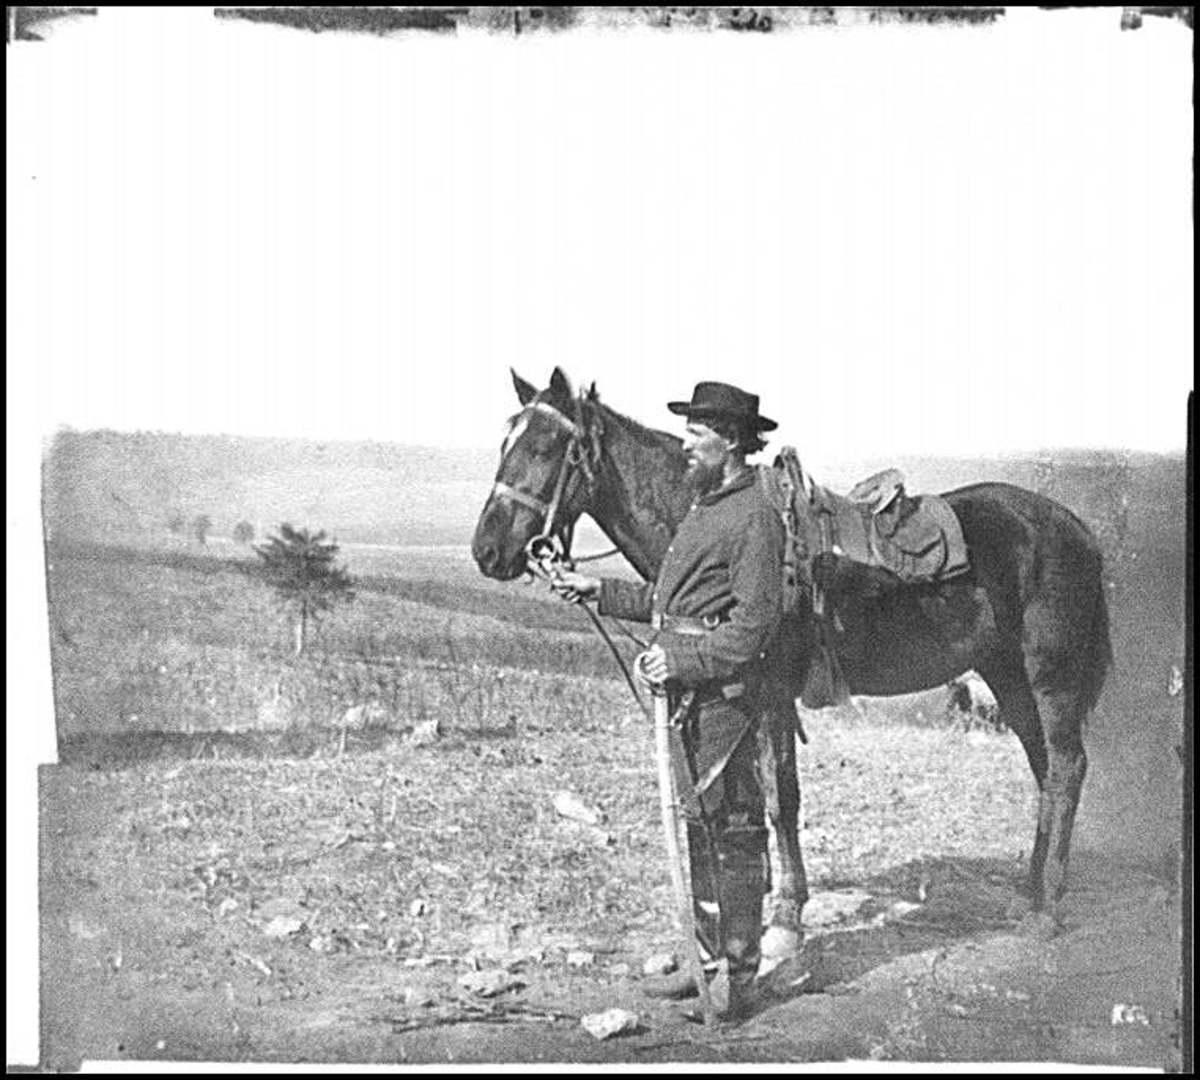 Union Cavalryman and his mount